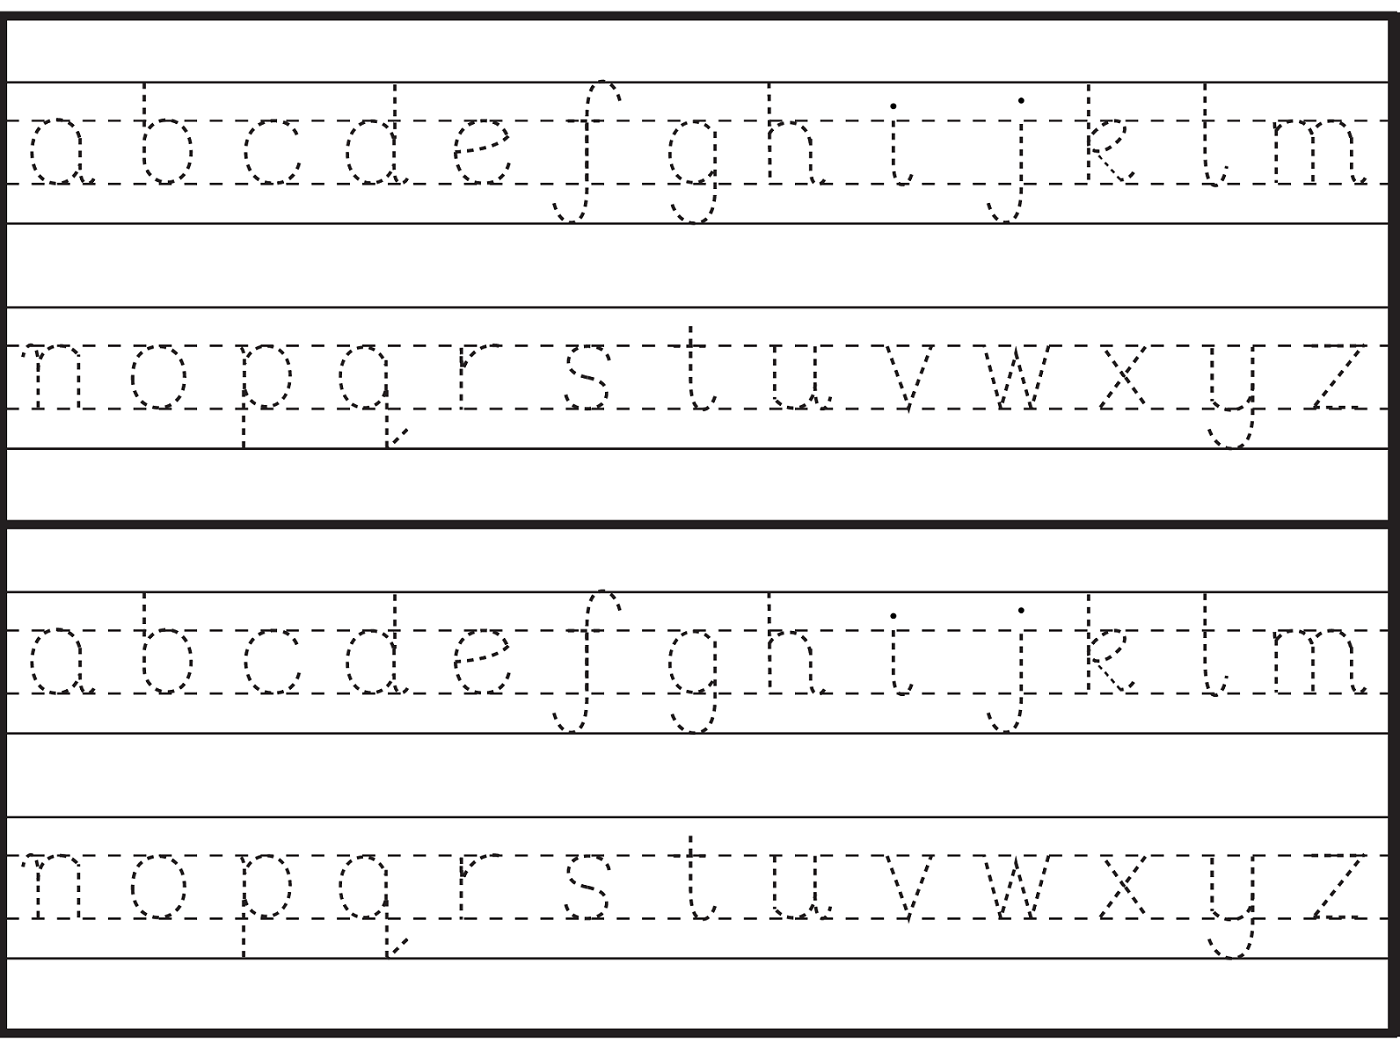 English Alphabet Worksheet For Kindergarten With Images